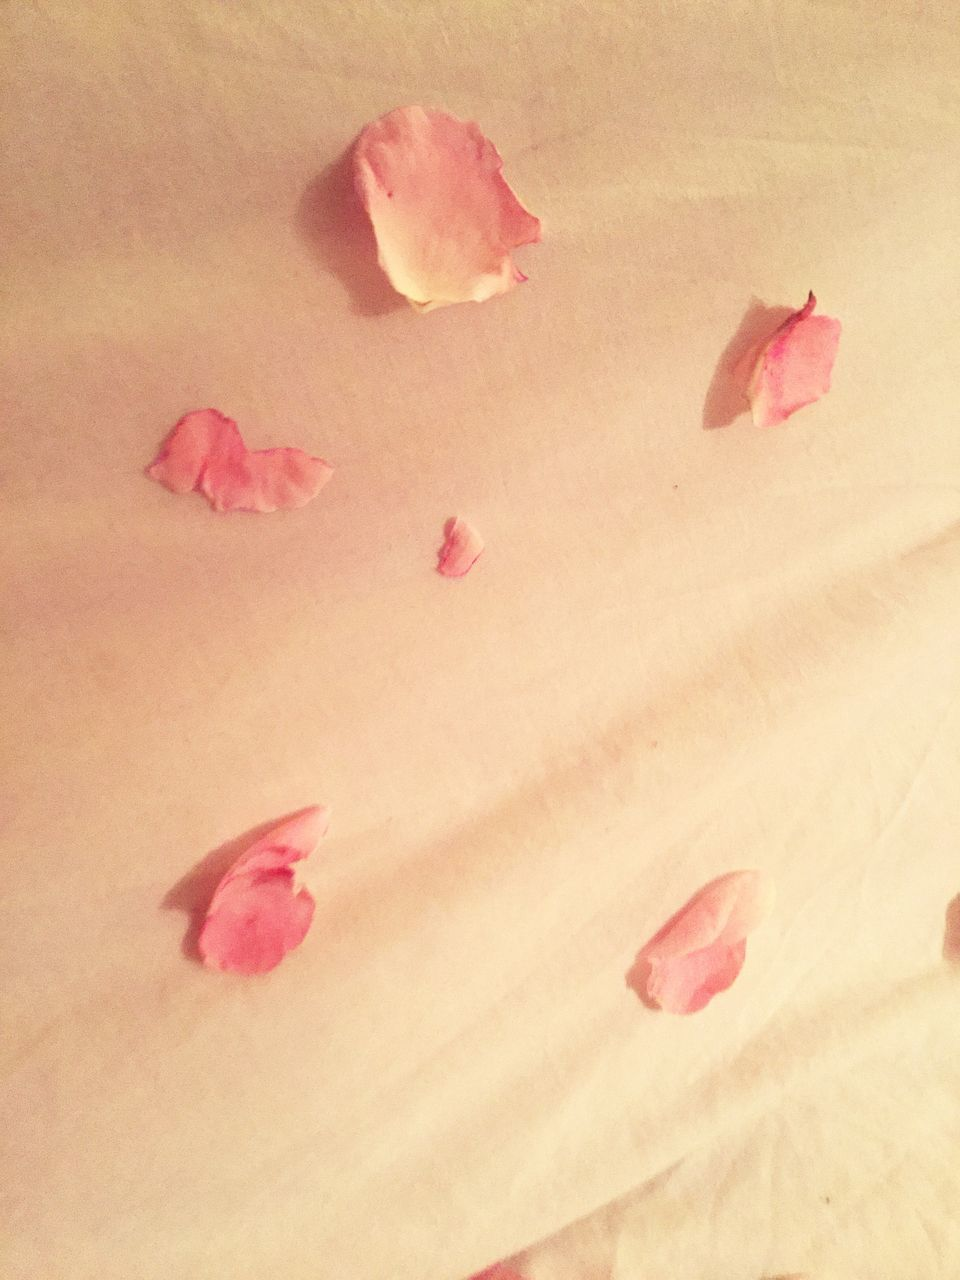 pink color, petal, rose - flower, no people, nature, flower, full frame, sand, beauty in nature, rose petals, backgrounds, fragility, close-up, flower head, day, freshness, outdoors